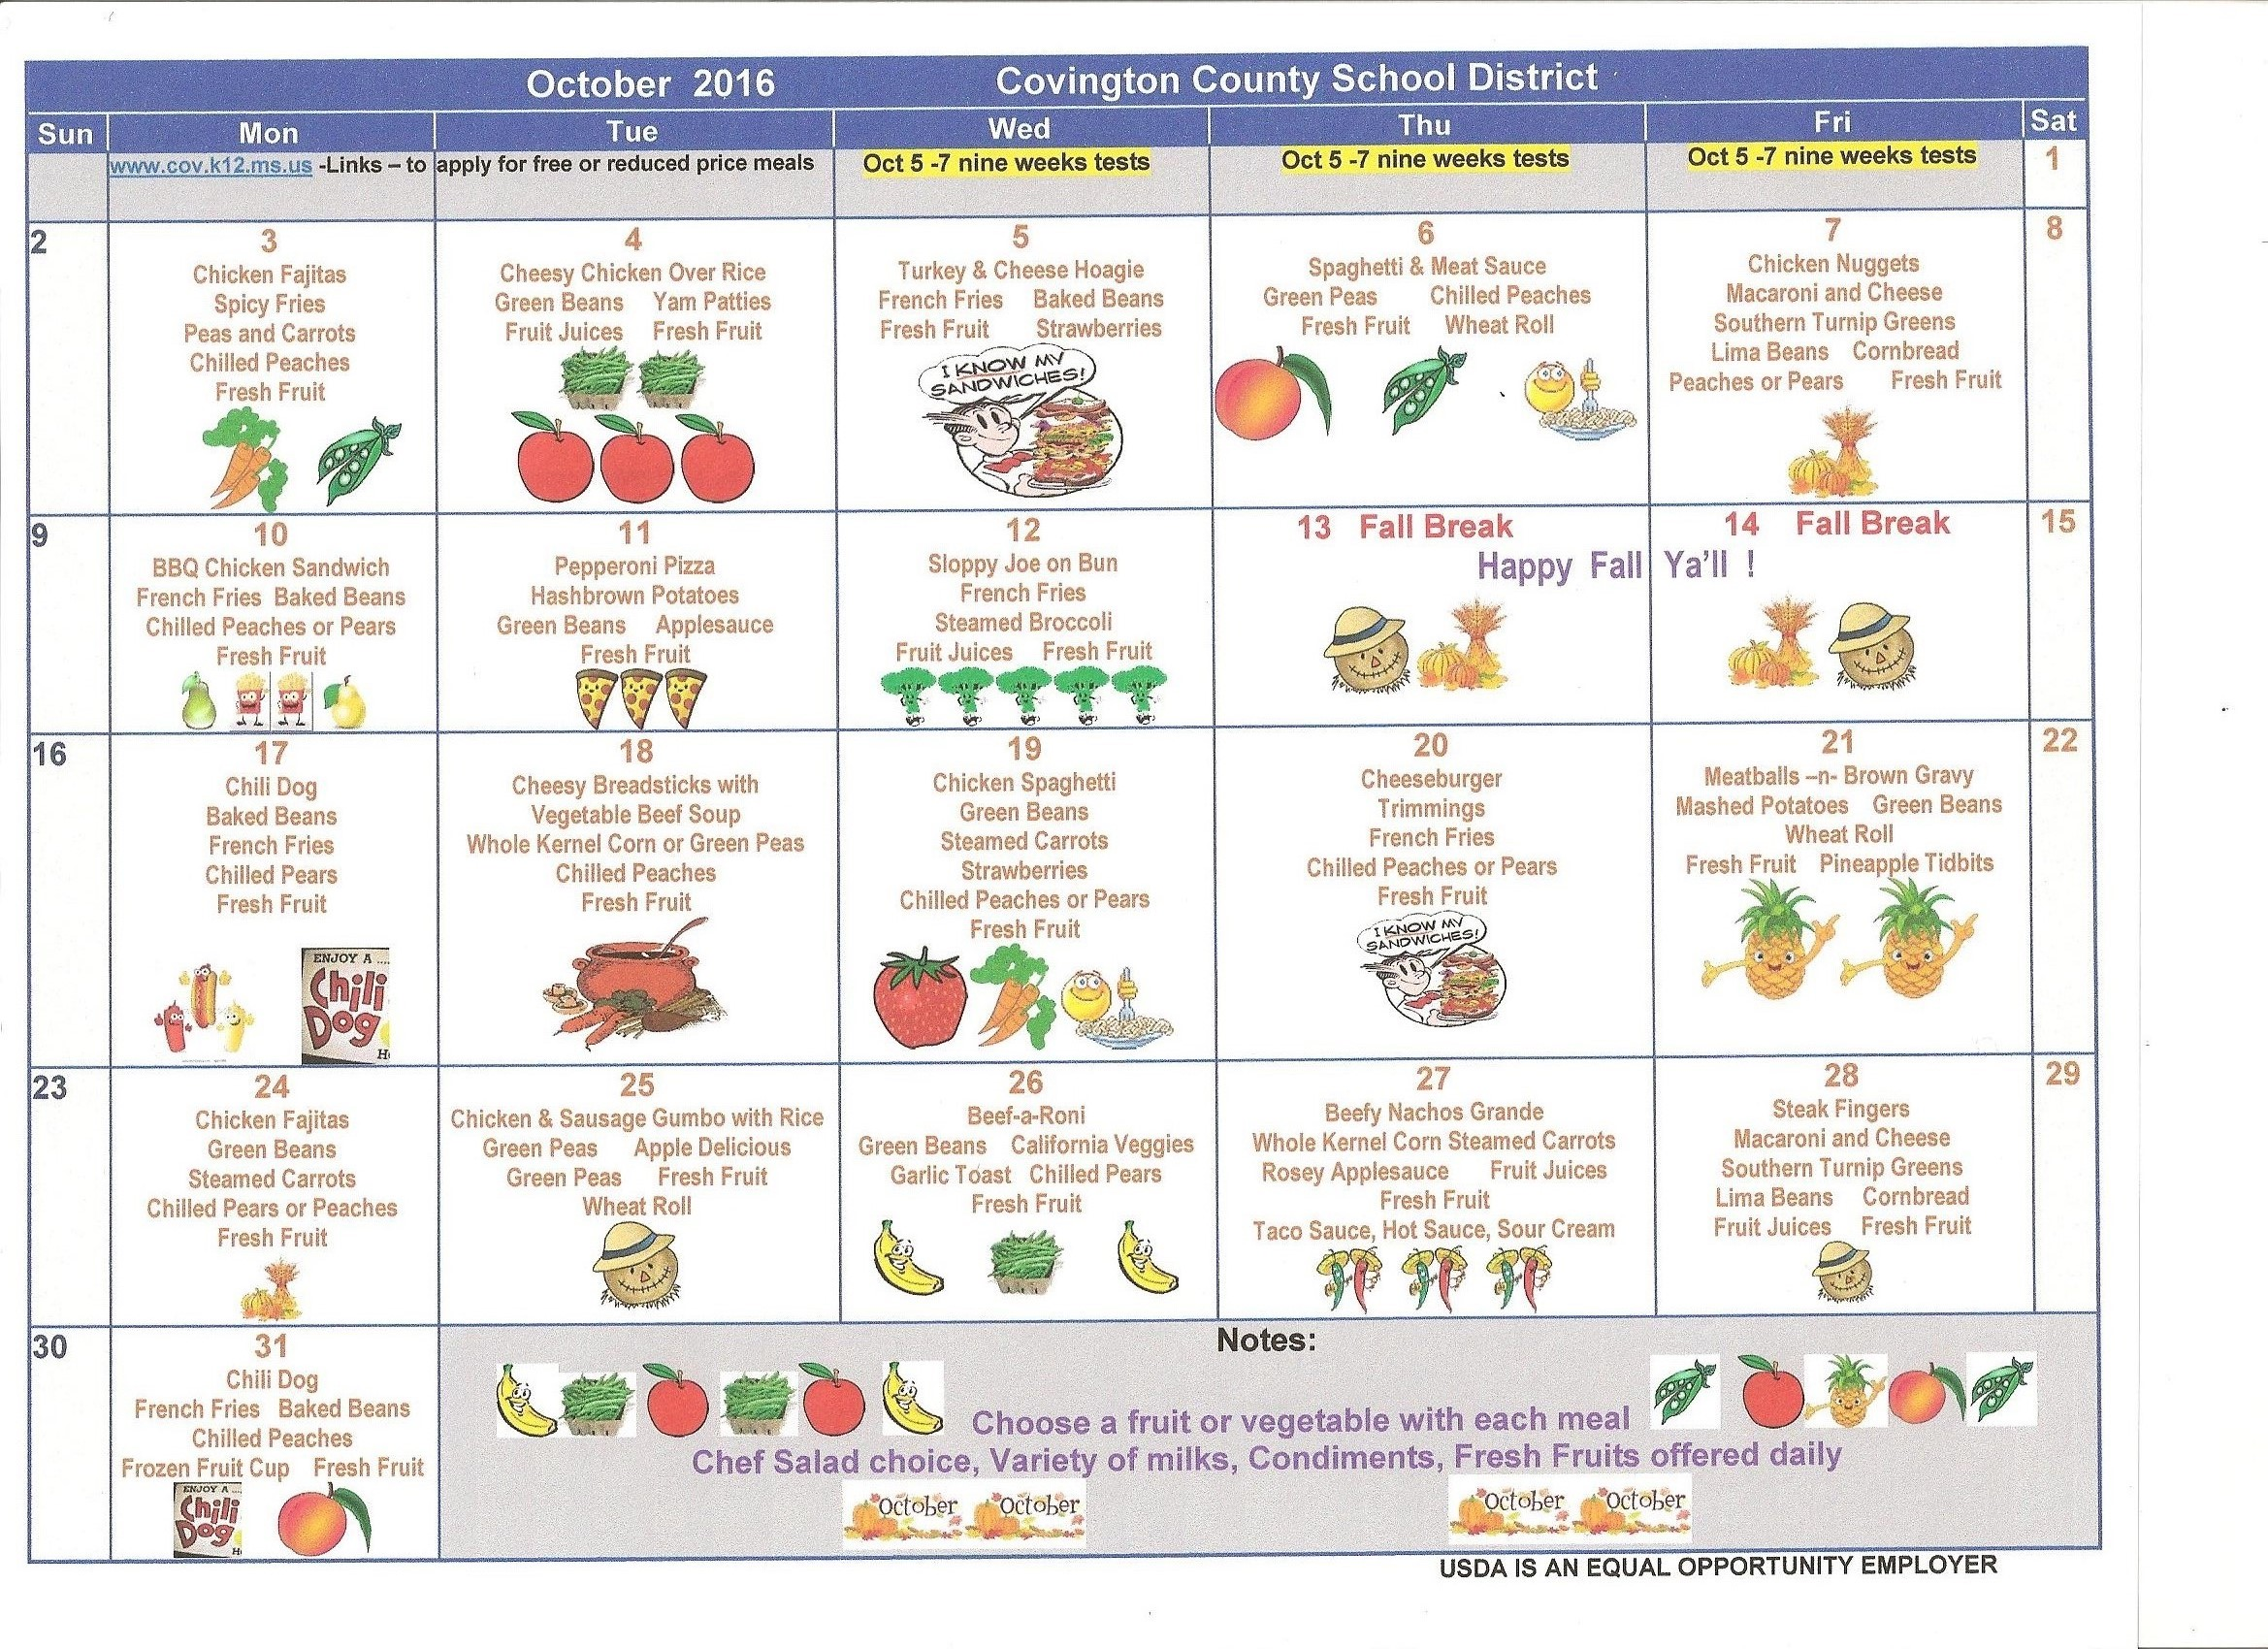 CCSD Menus for October 2016